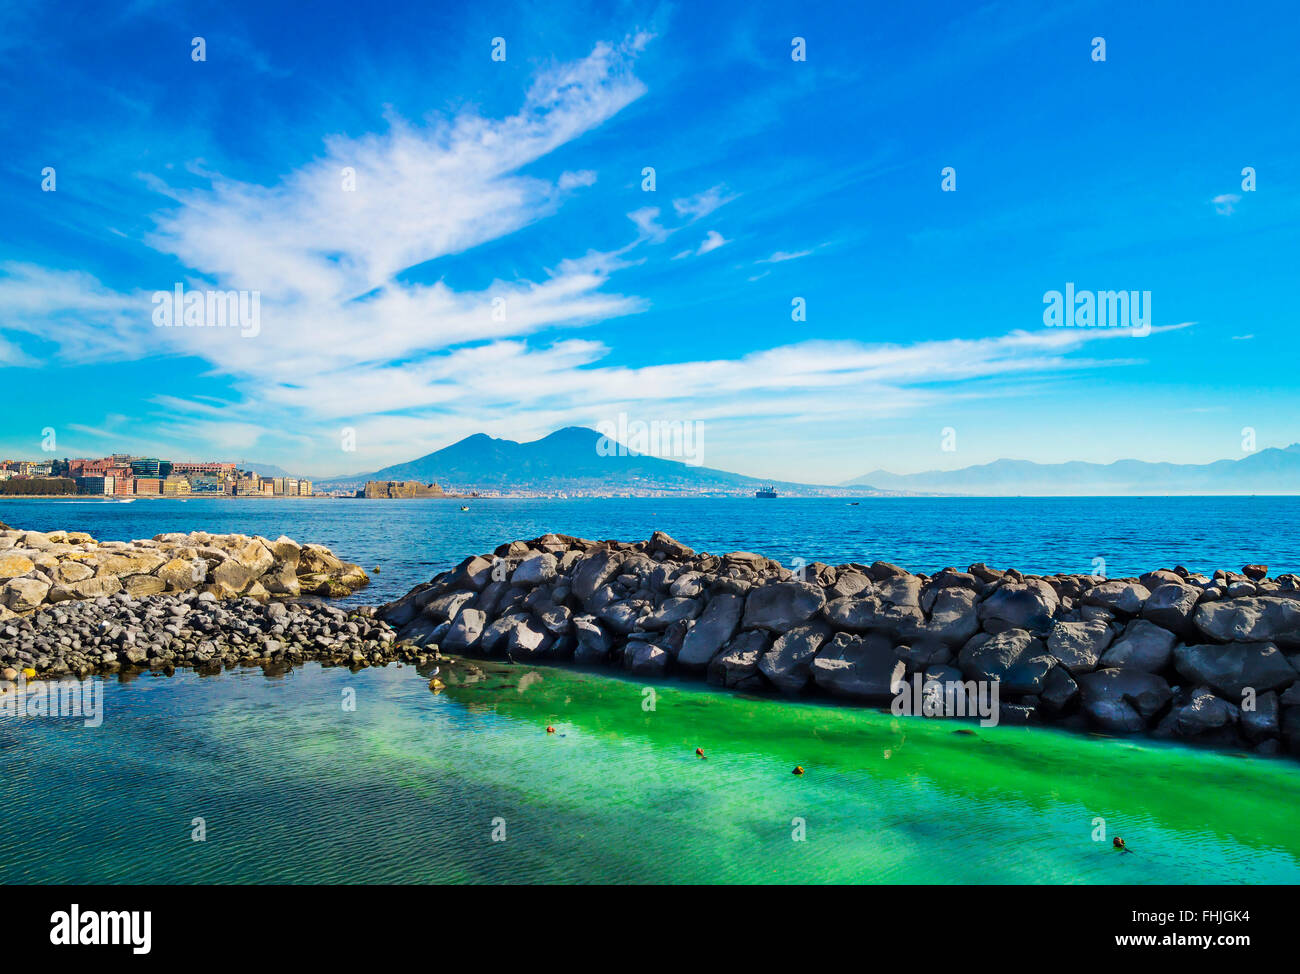 Morning view of Gulf of Naples with blue sky ,Mediterranean sea and Vesuvius Volcano at the background - Stock Image